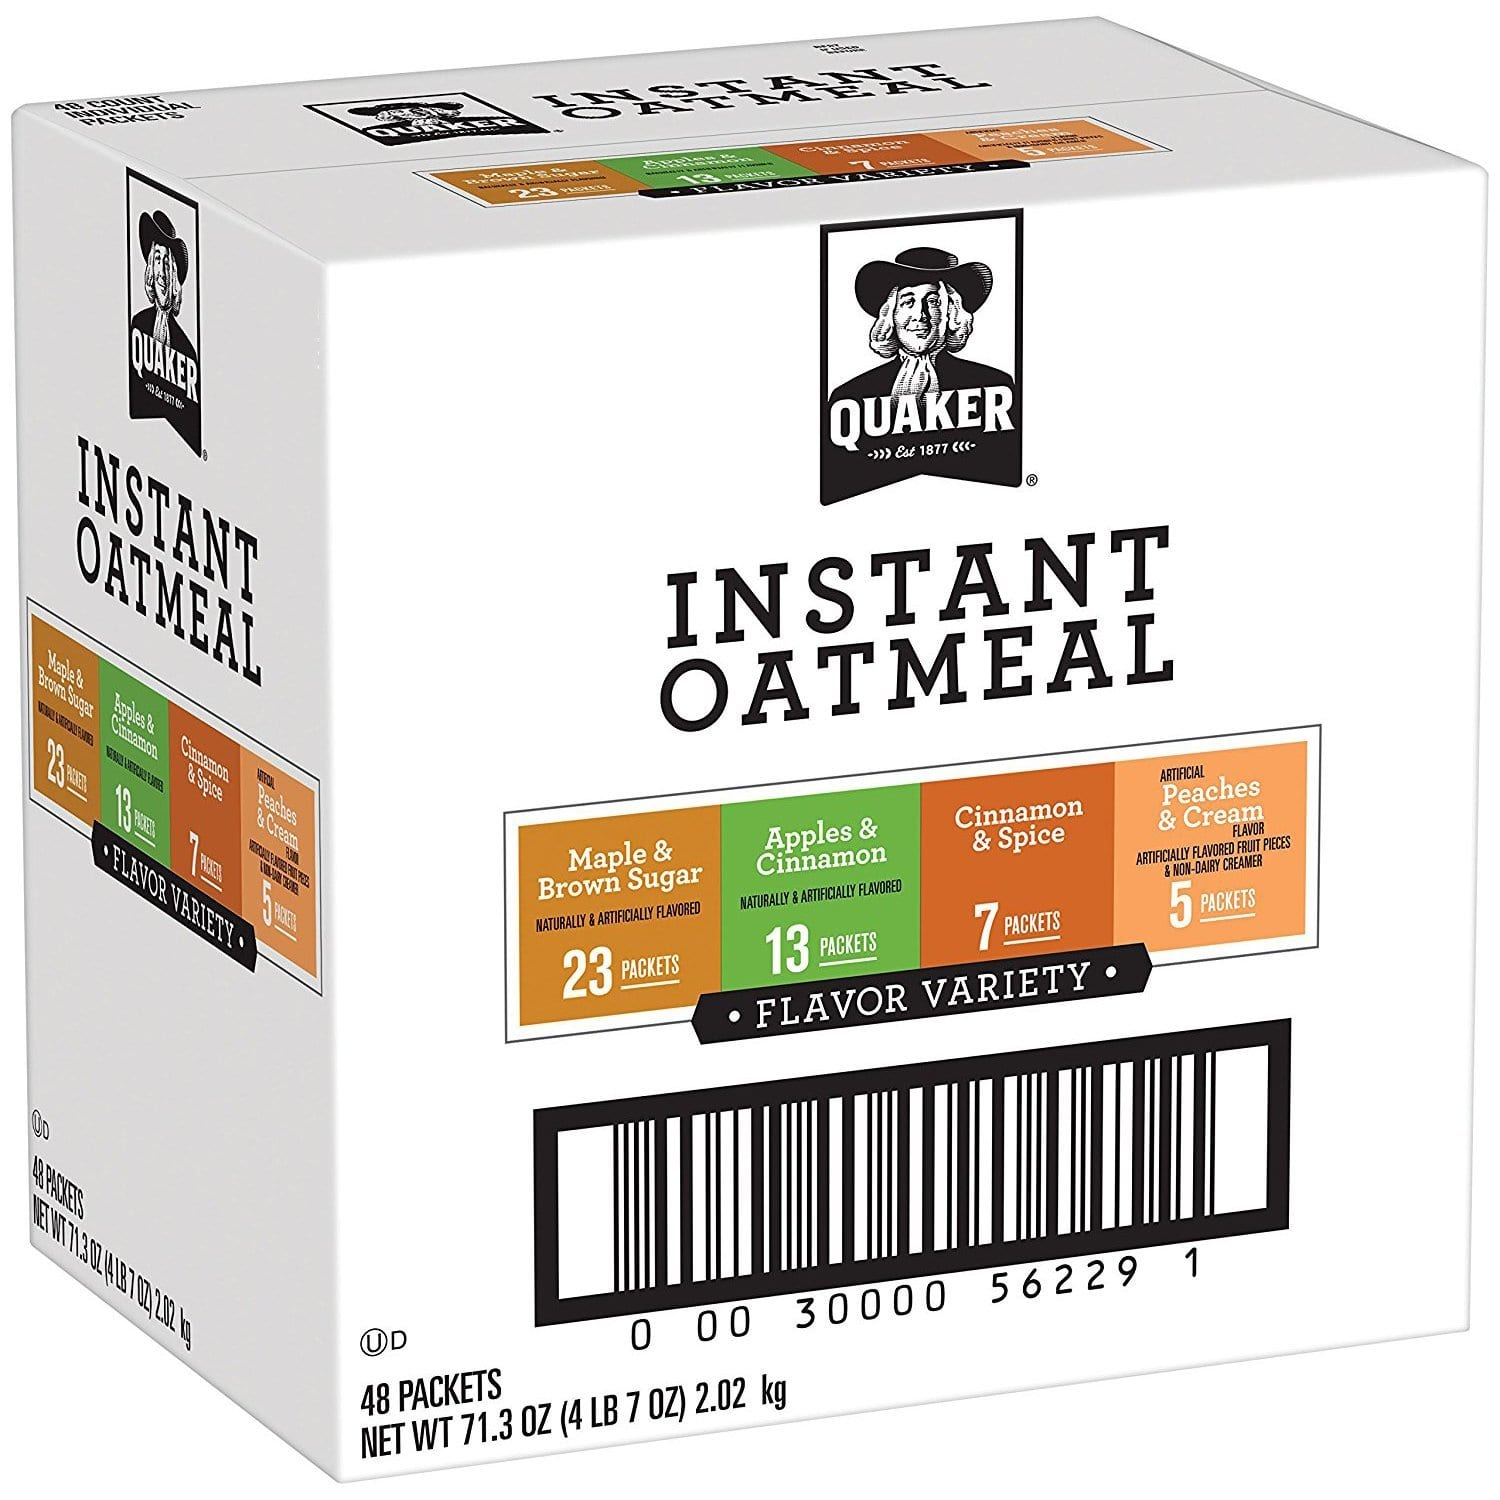 48-Count Quaker Instant Oatmeal Variety Pack $6.41 or Less w/ S&S + Free Shipping ~ Amazon